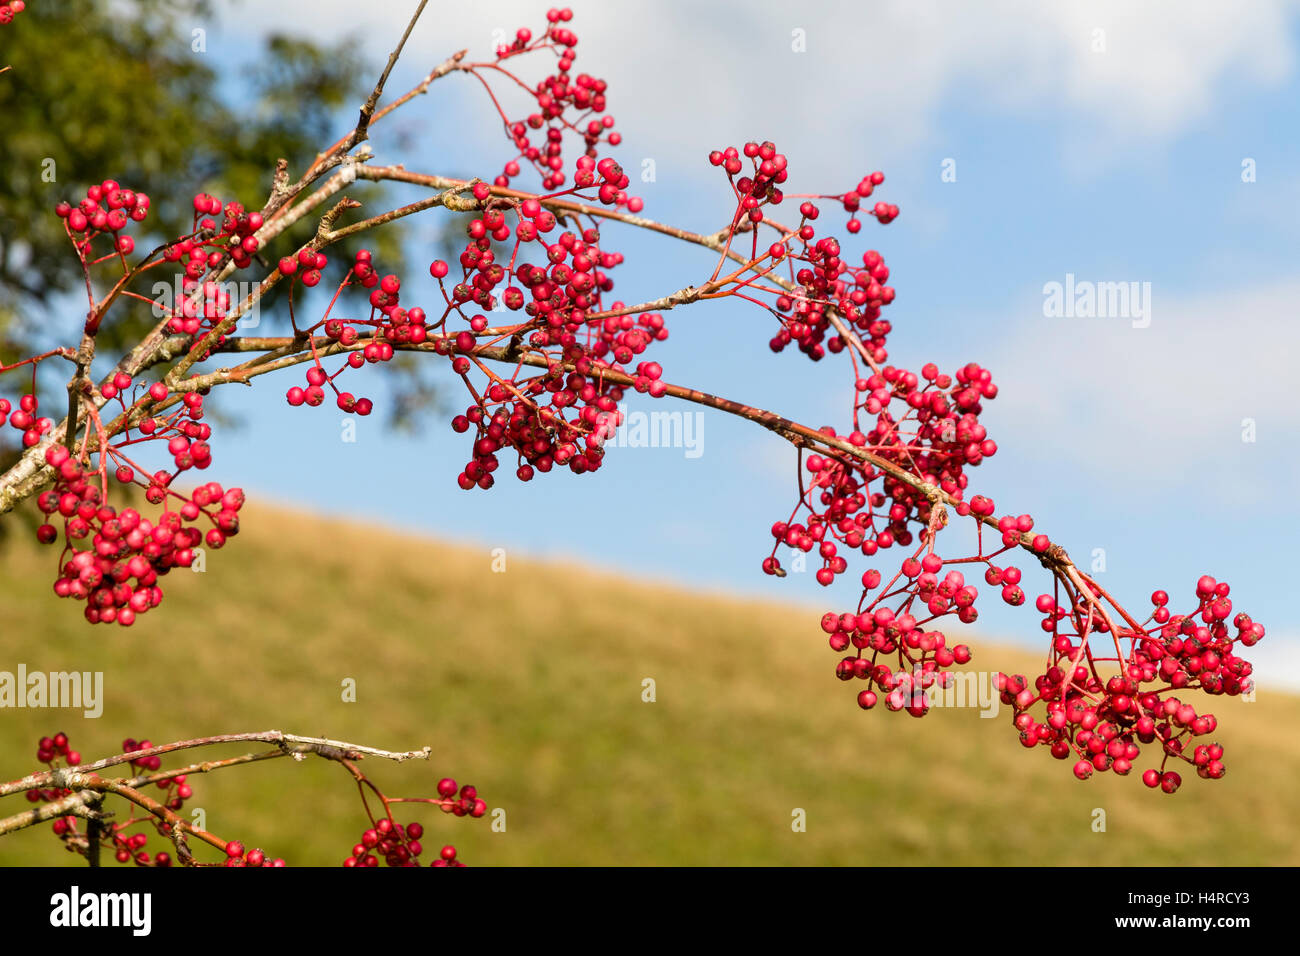 pink-berry-laden-autumn-branch-of-the-chinese-rowan-sorbus-pseudohupehensis-H4RCY3.jpg